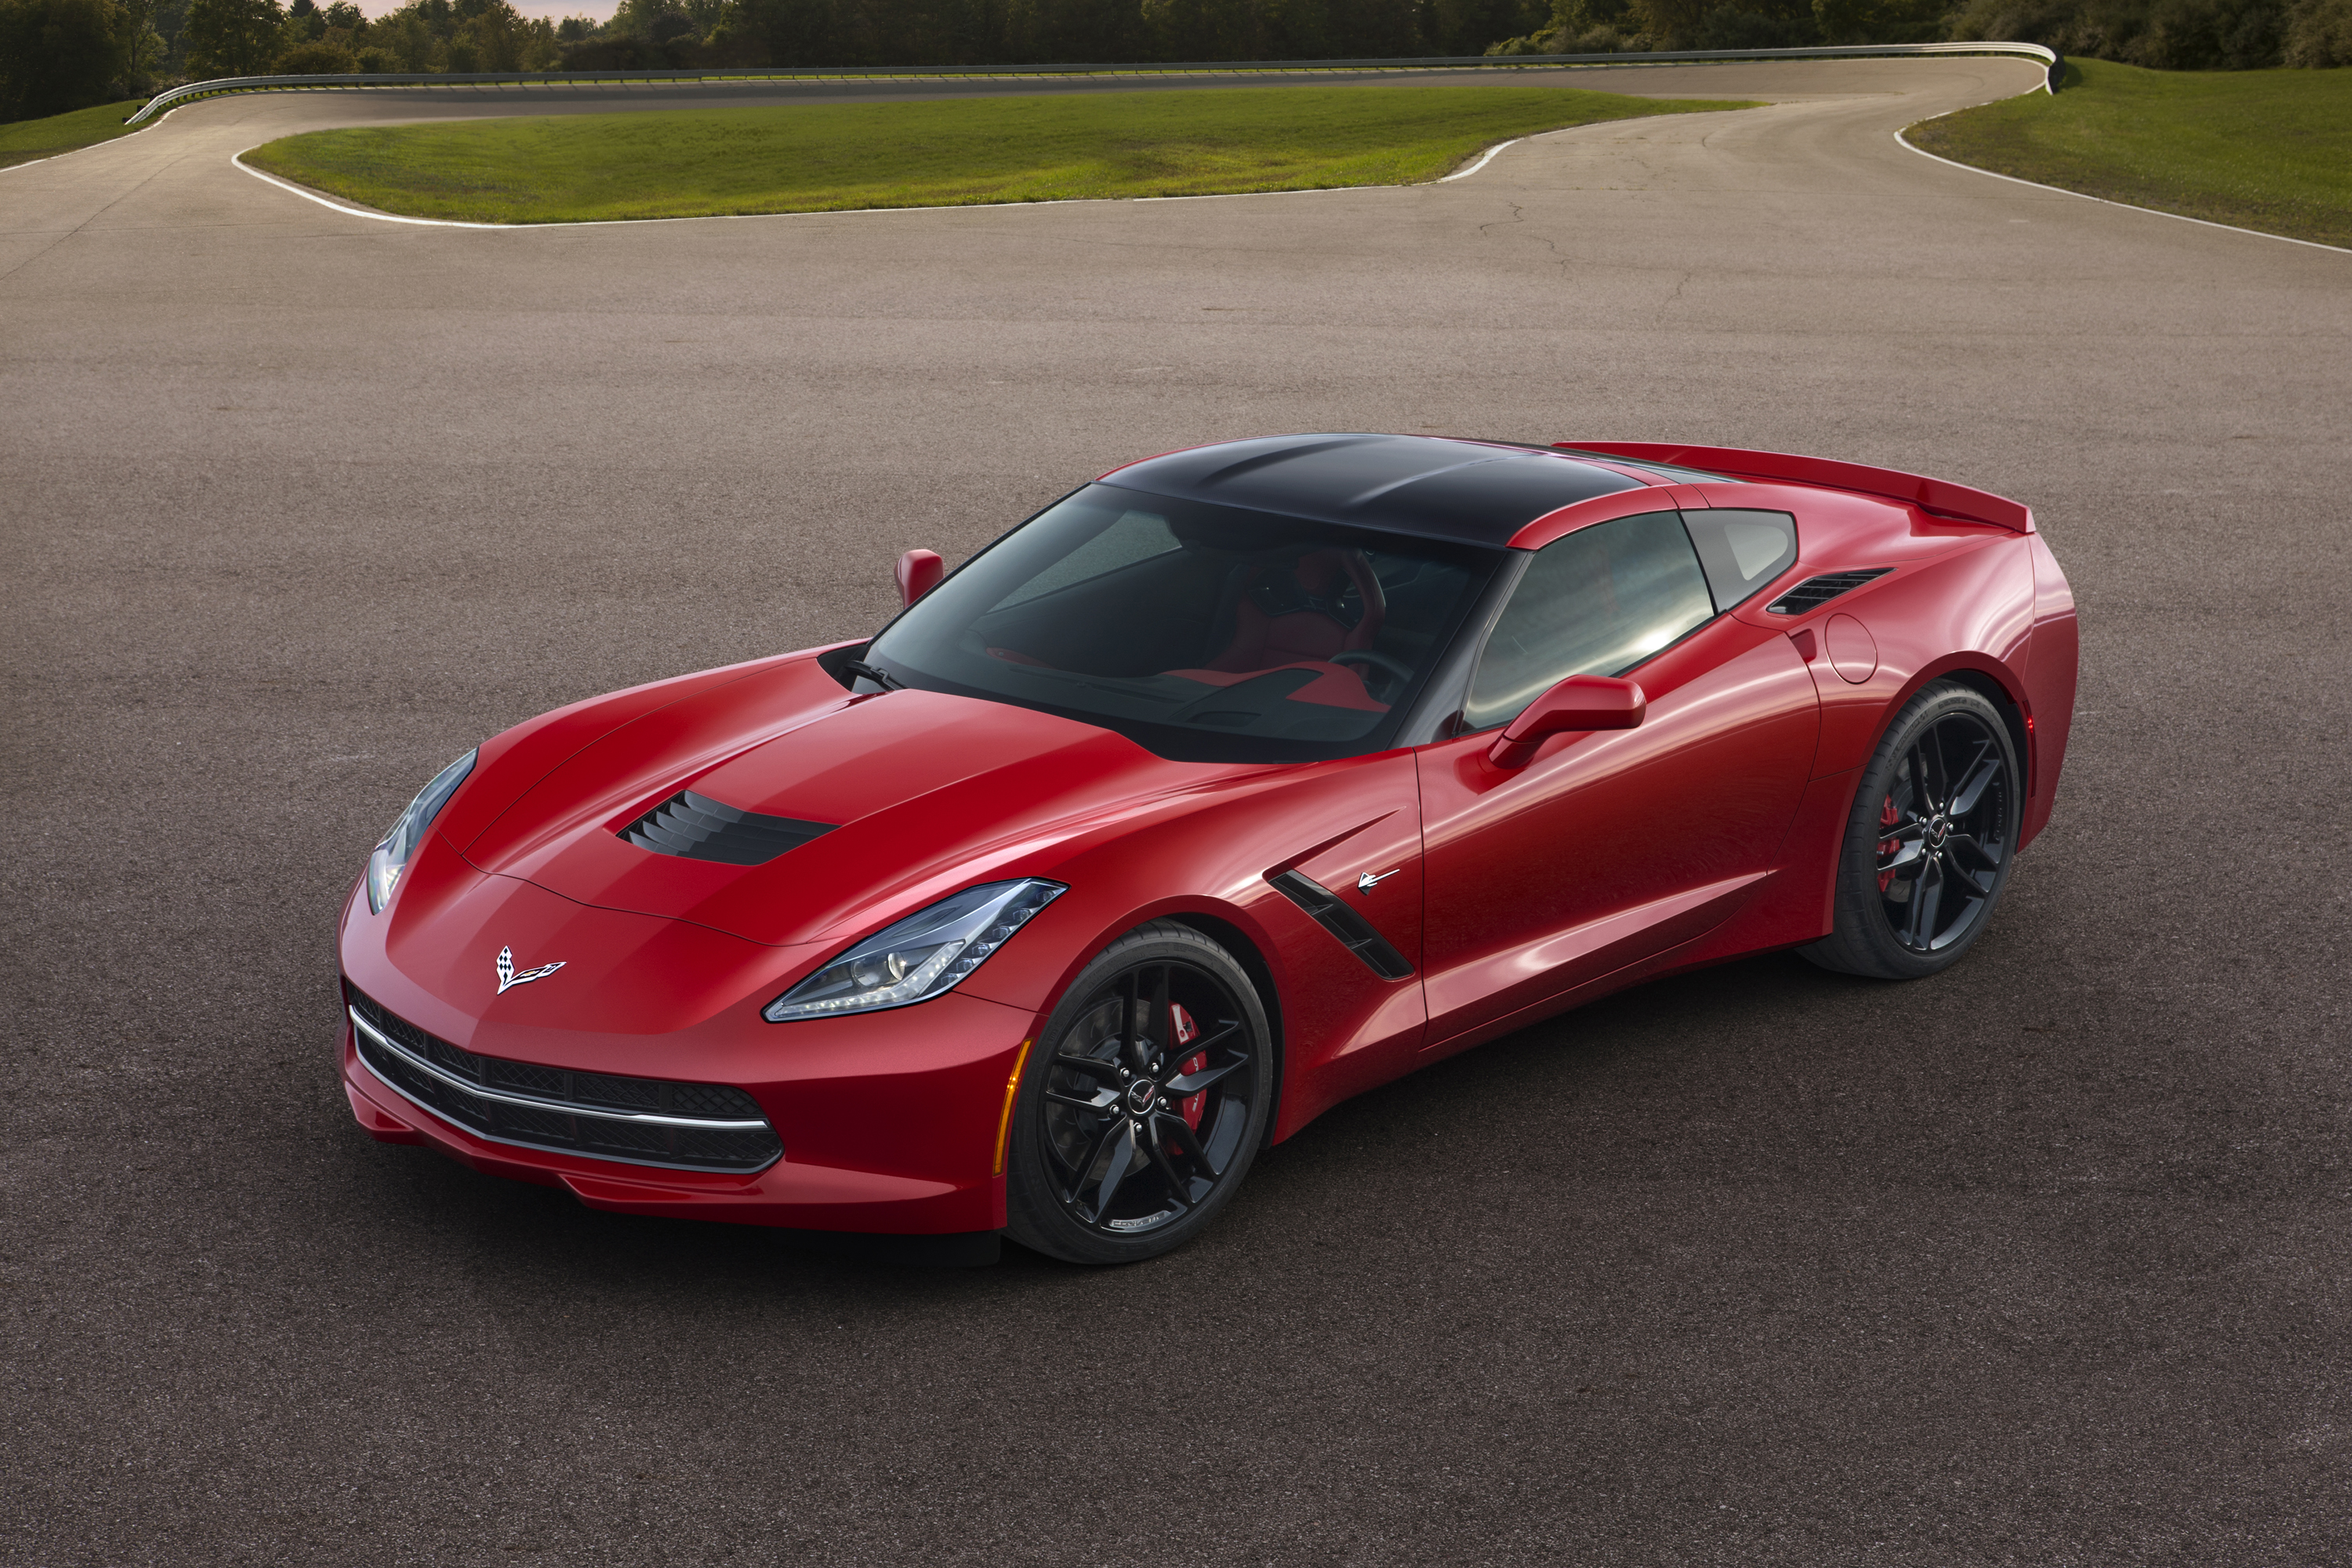 Watch This C7 Corvette Break The 200-MPH Barrier